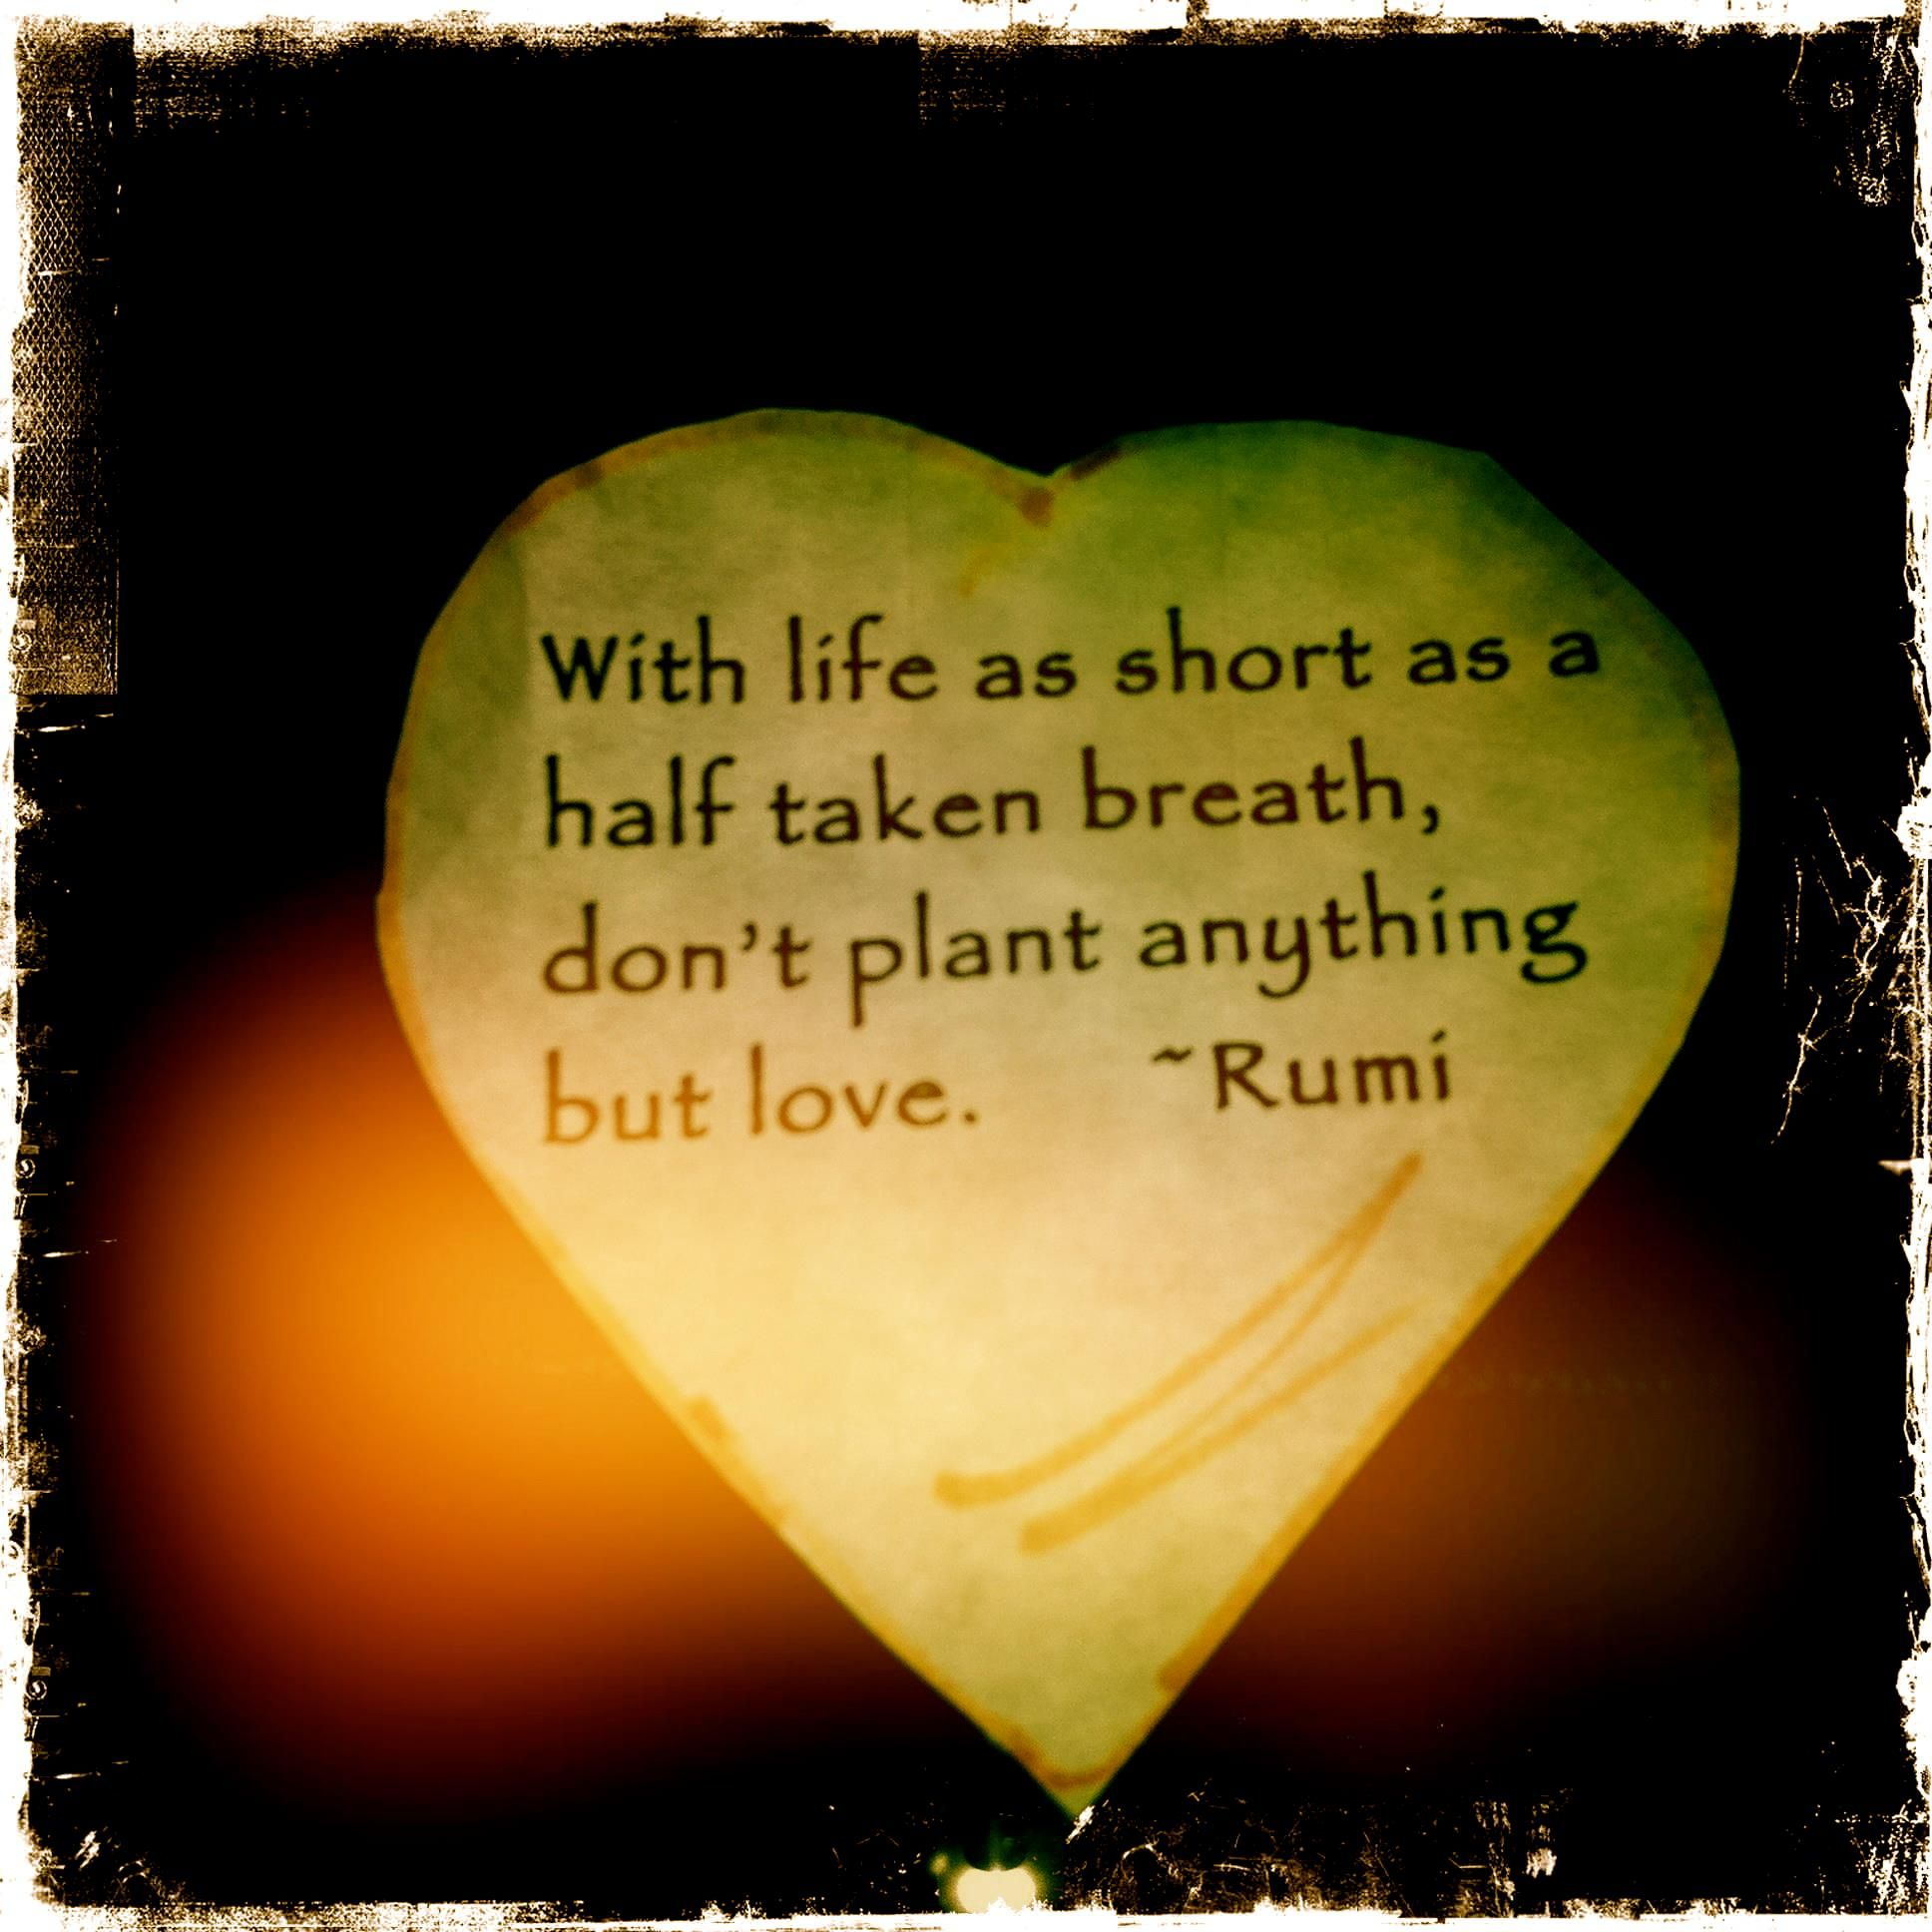 Short Spiritual Quotes About Life With Life As Short As A Half Taken Breath Don't Plant Anything